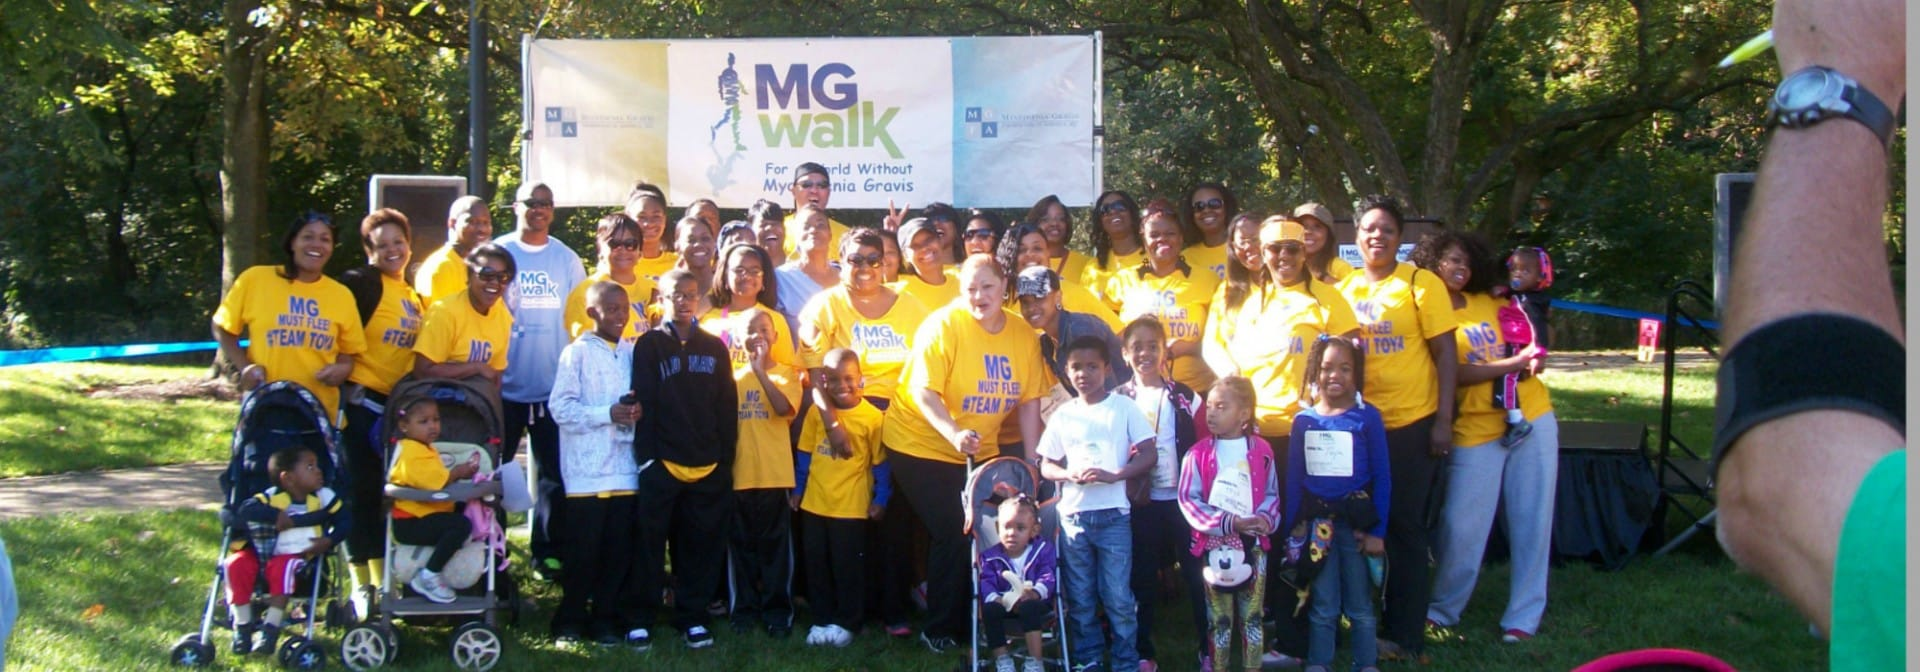 Northern Illinois MG Walk 2015